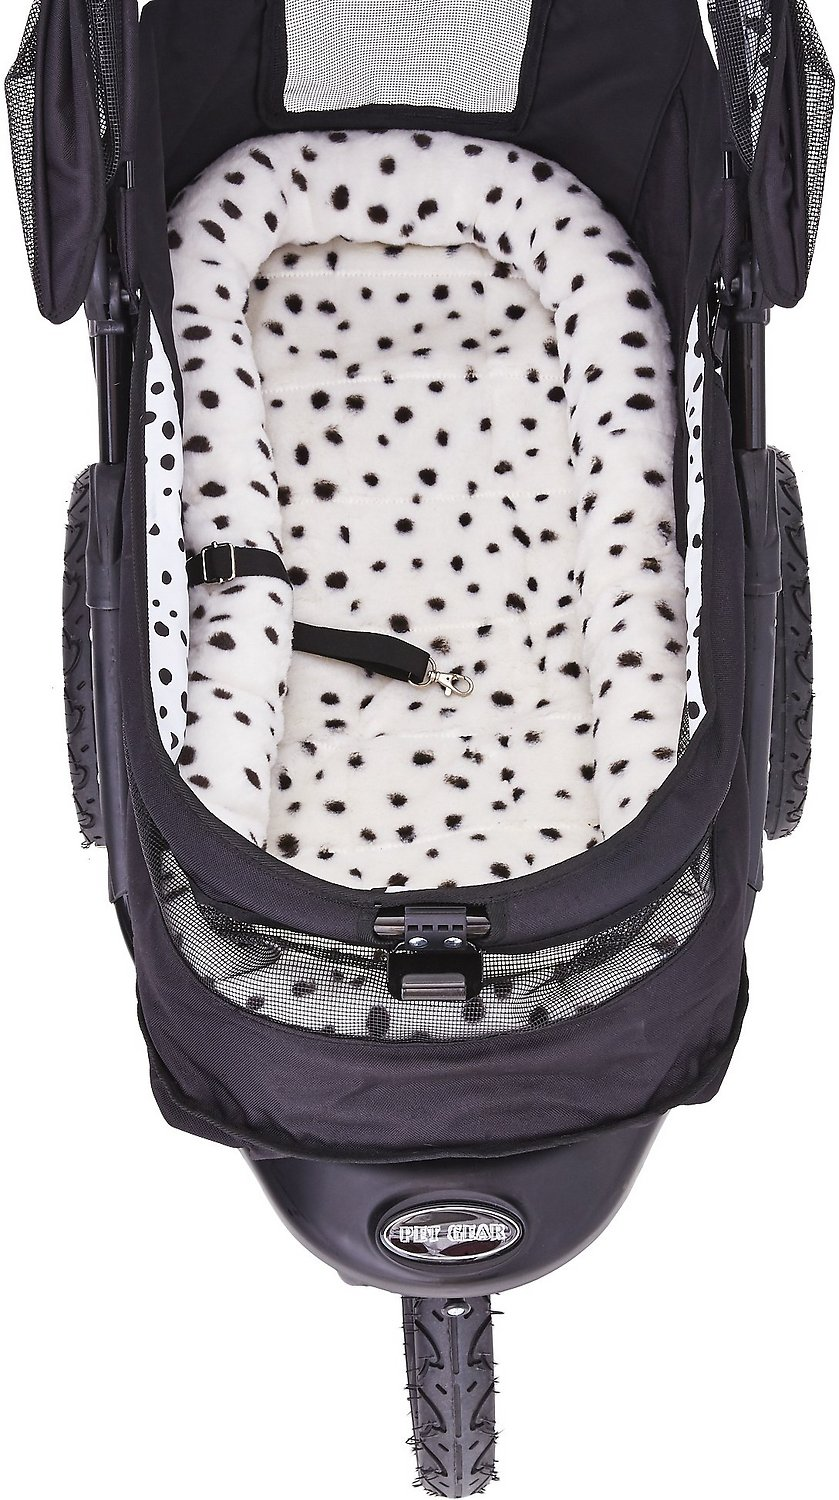 Pet Gear NV No-Zip Dog & Cat Stroller, Dalmatian - Chewy.com